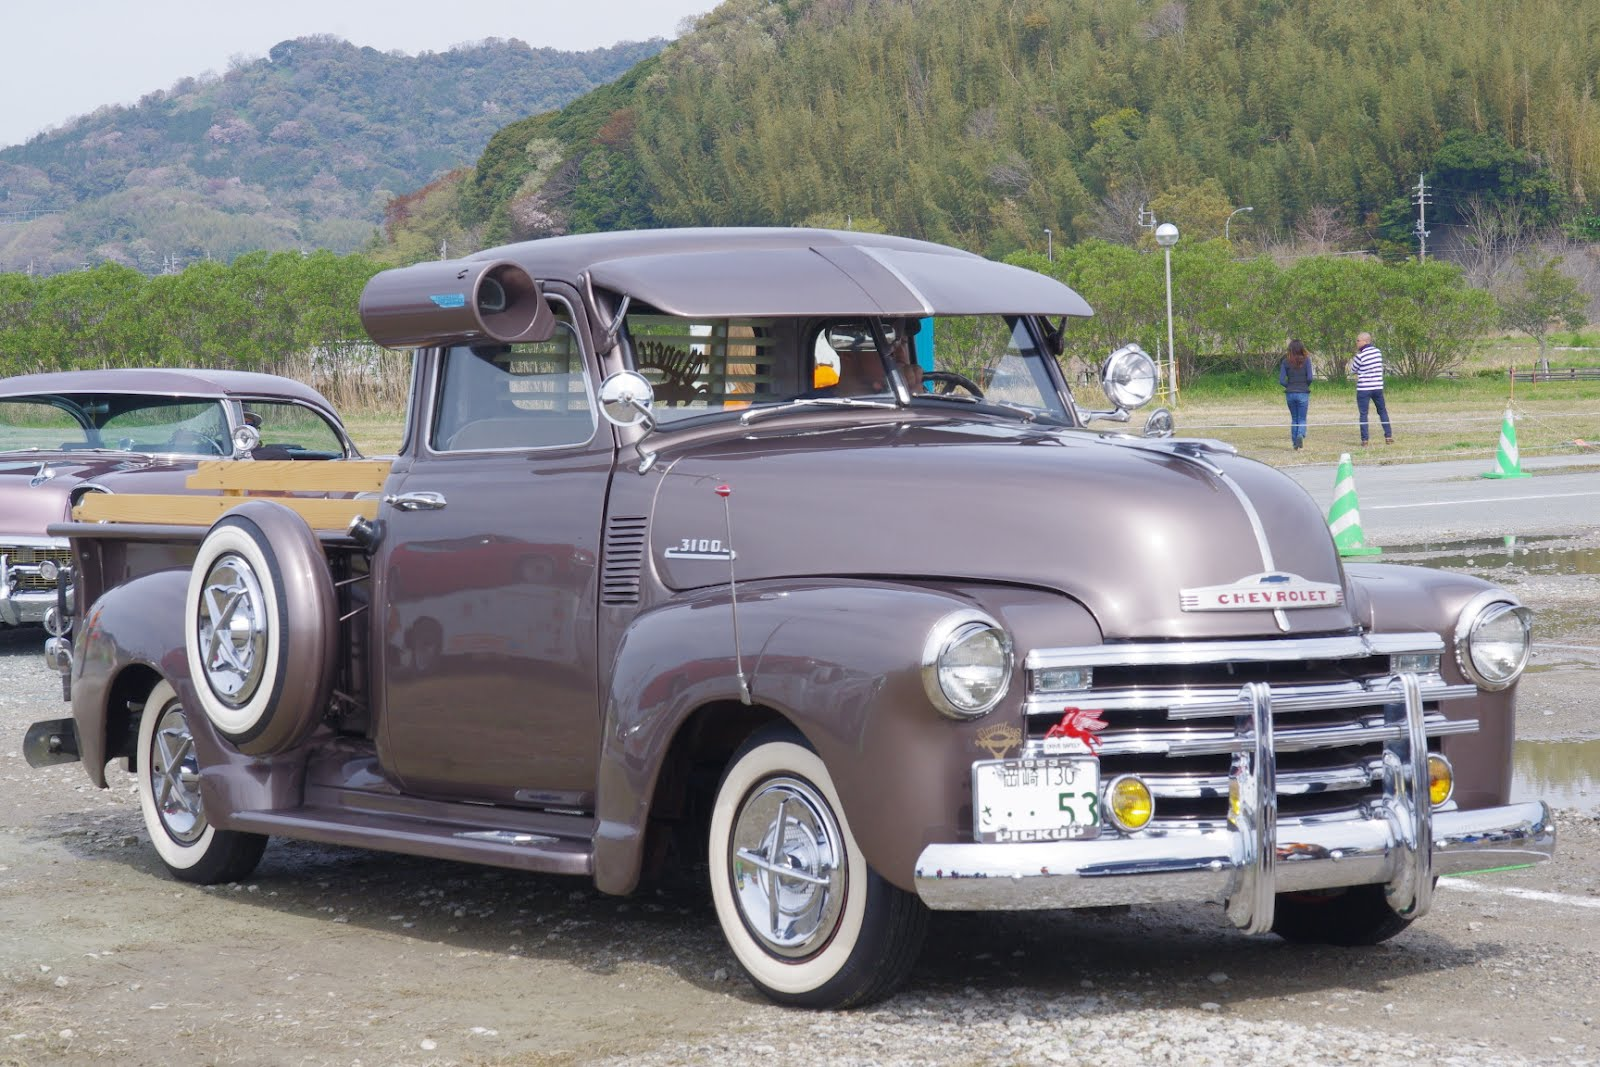 Truck 1948 chevy panel truck : 1953 Chevy Pick Up. Not my style but I like the air conditioner on ...